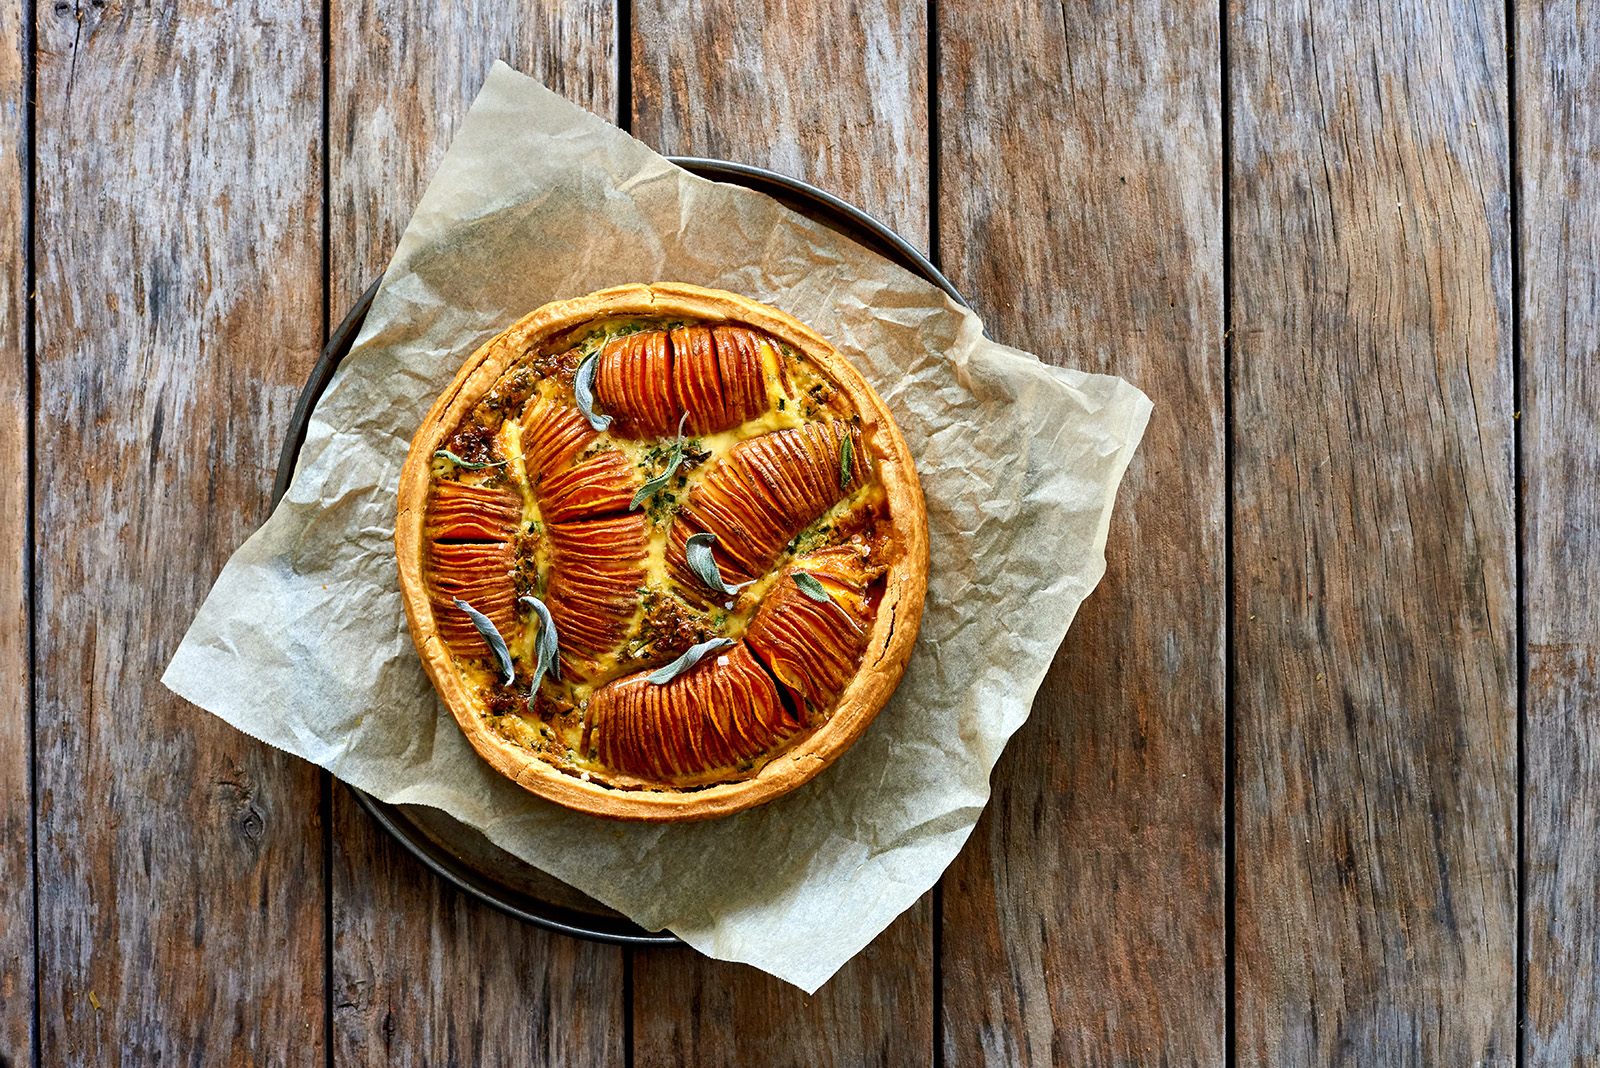 Hasselback sweet potato quiche